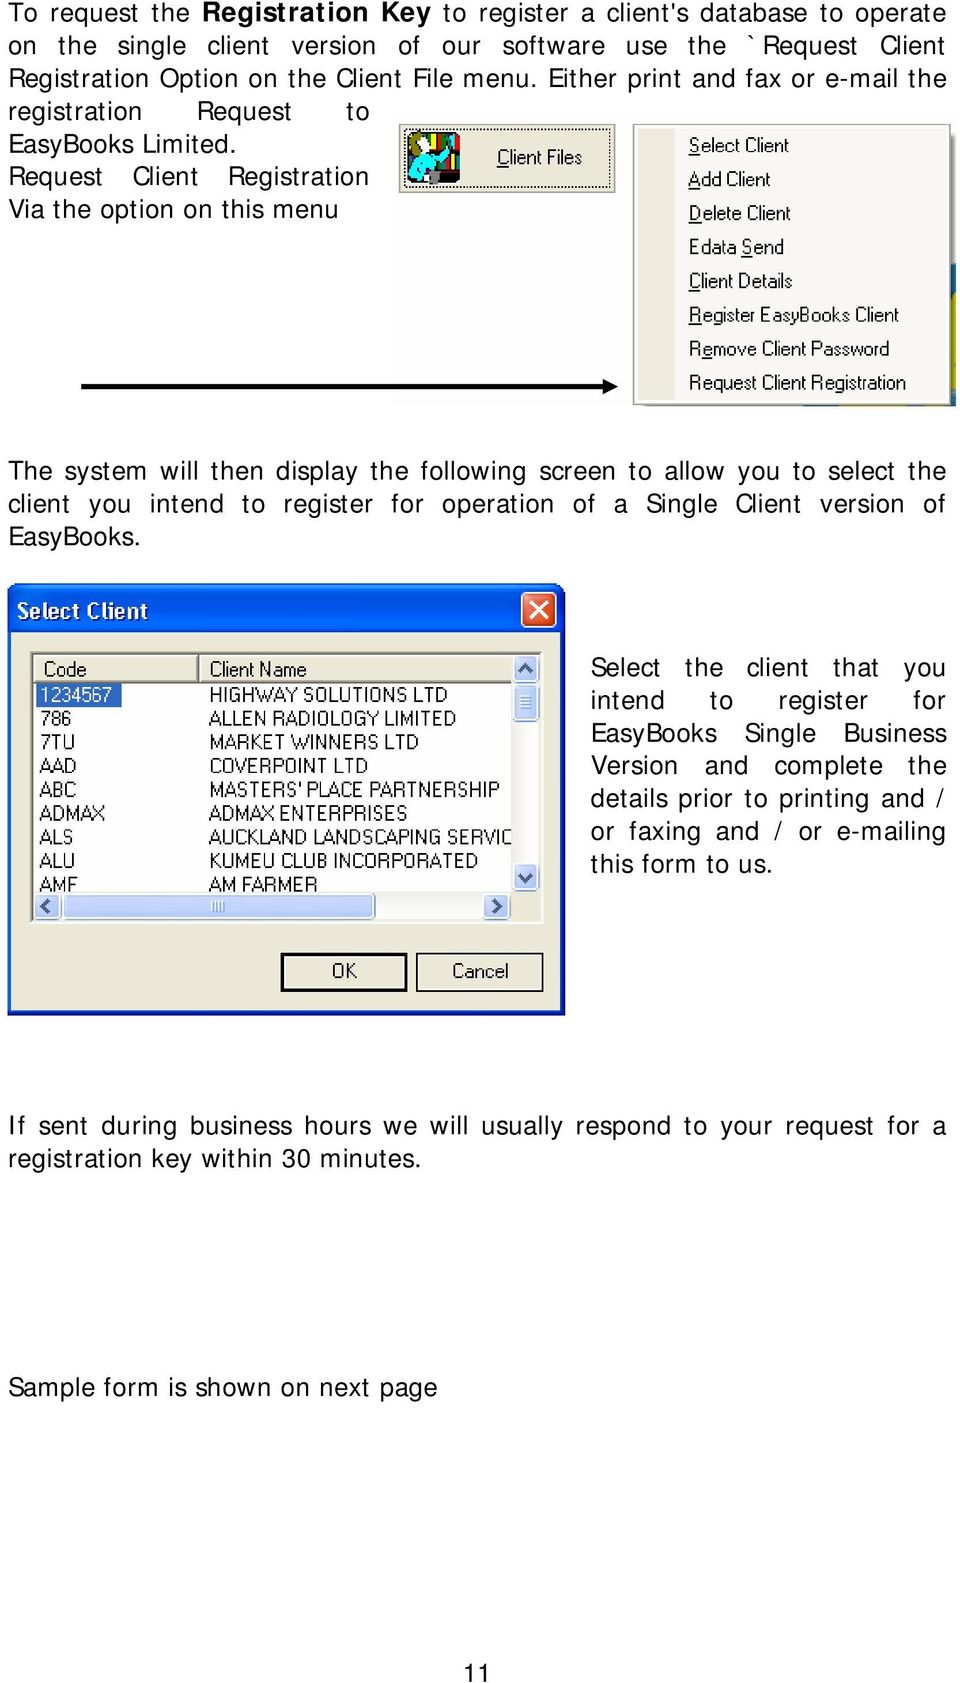 Request Client Registration Via the option on this menu The system will then display the following screen to allow you to select the client you intend to register for operation of a Single Client